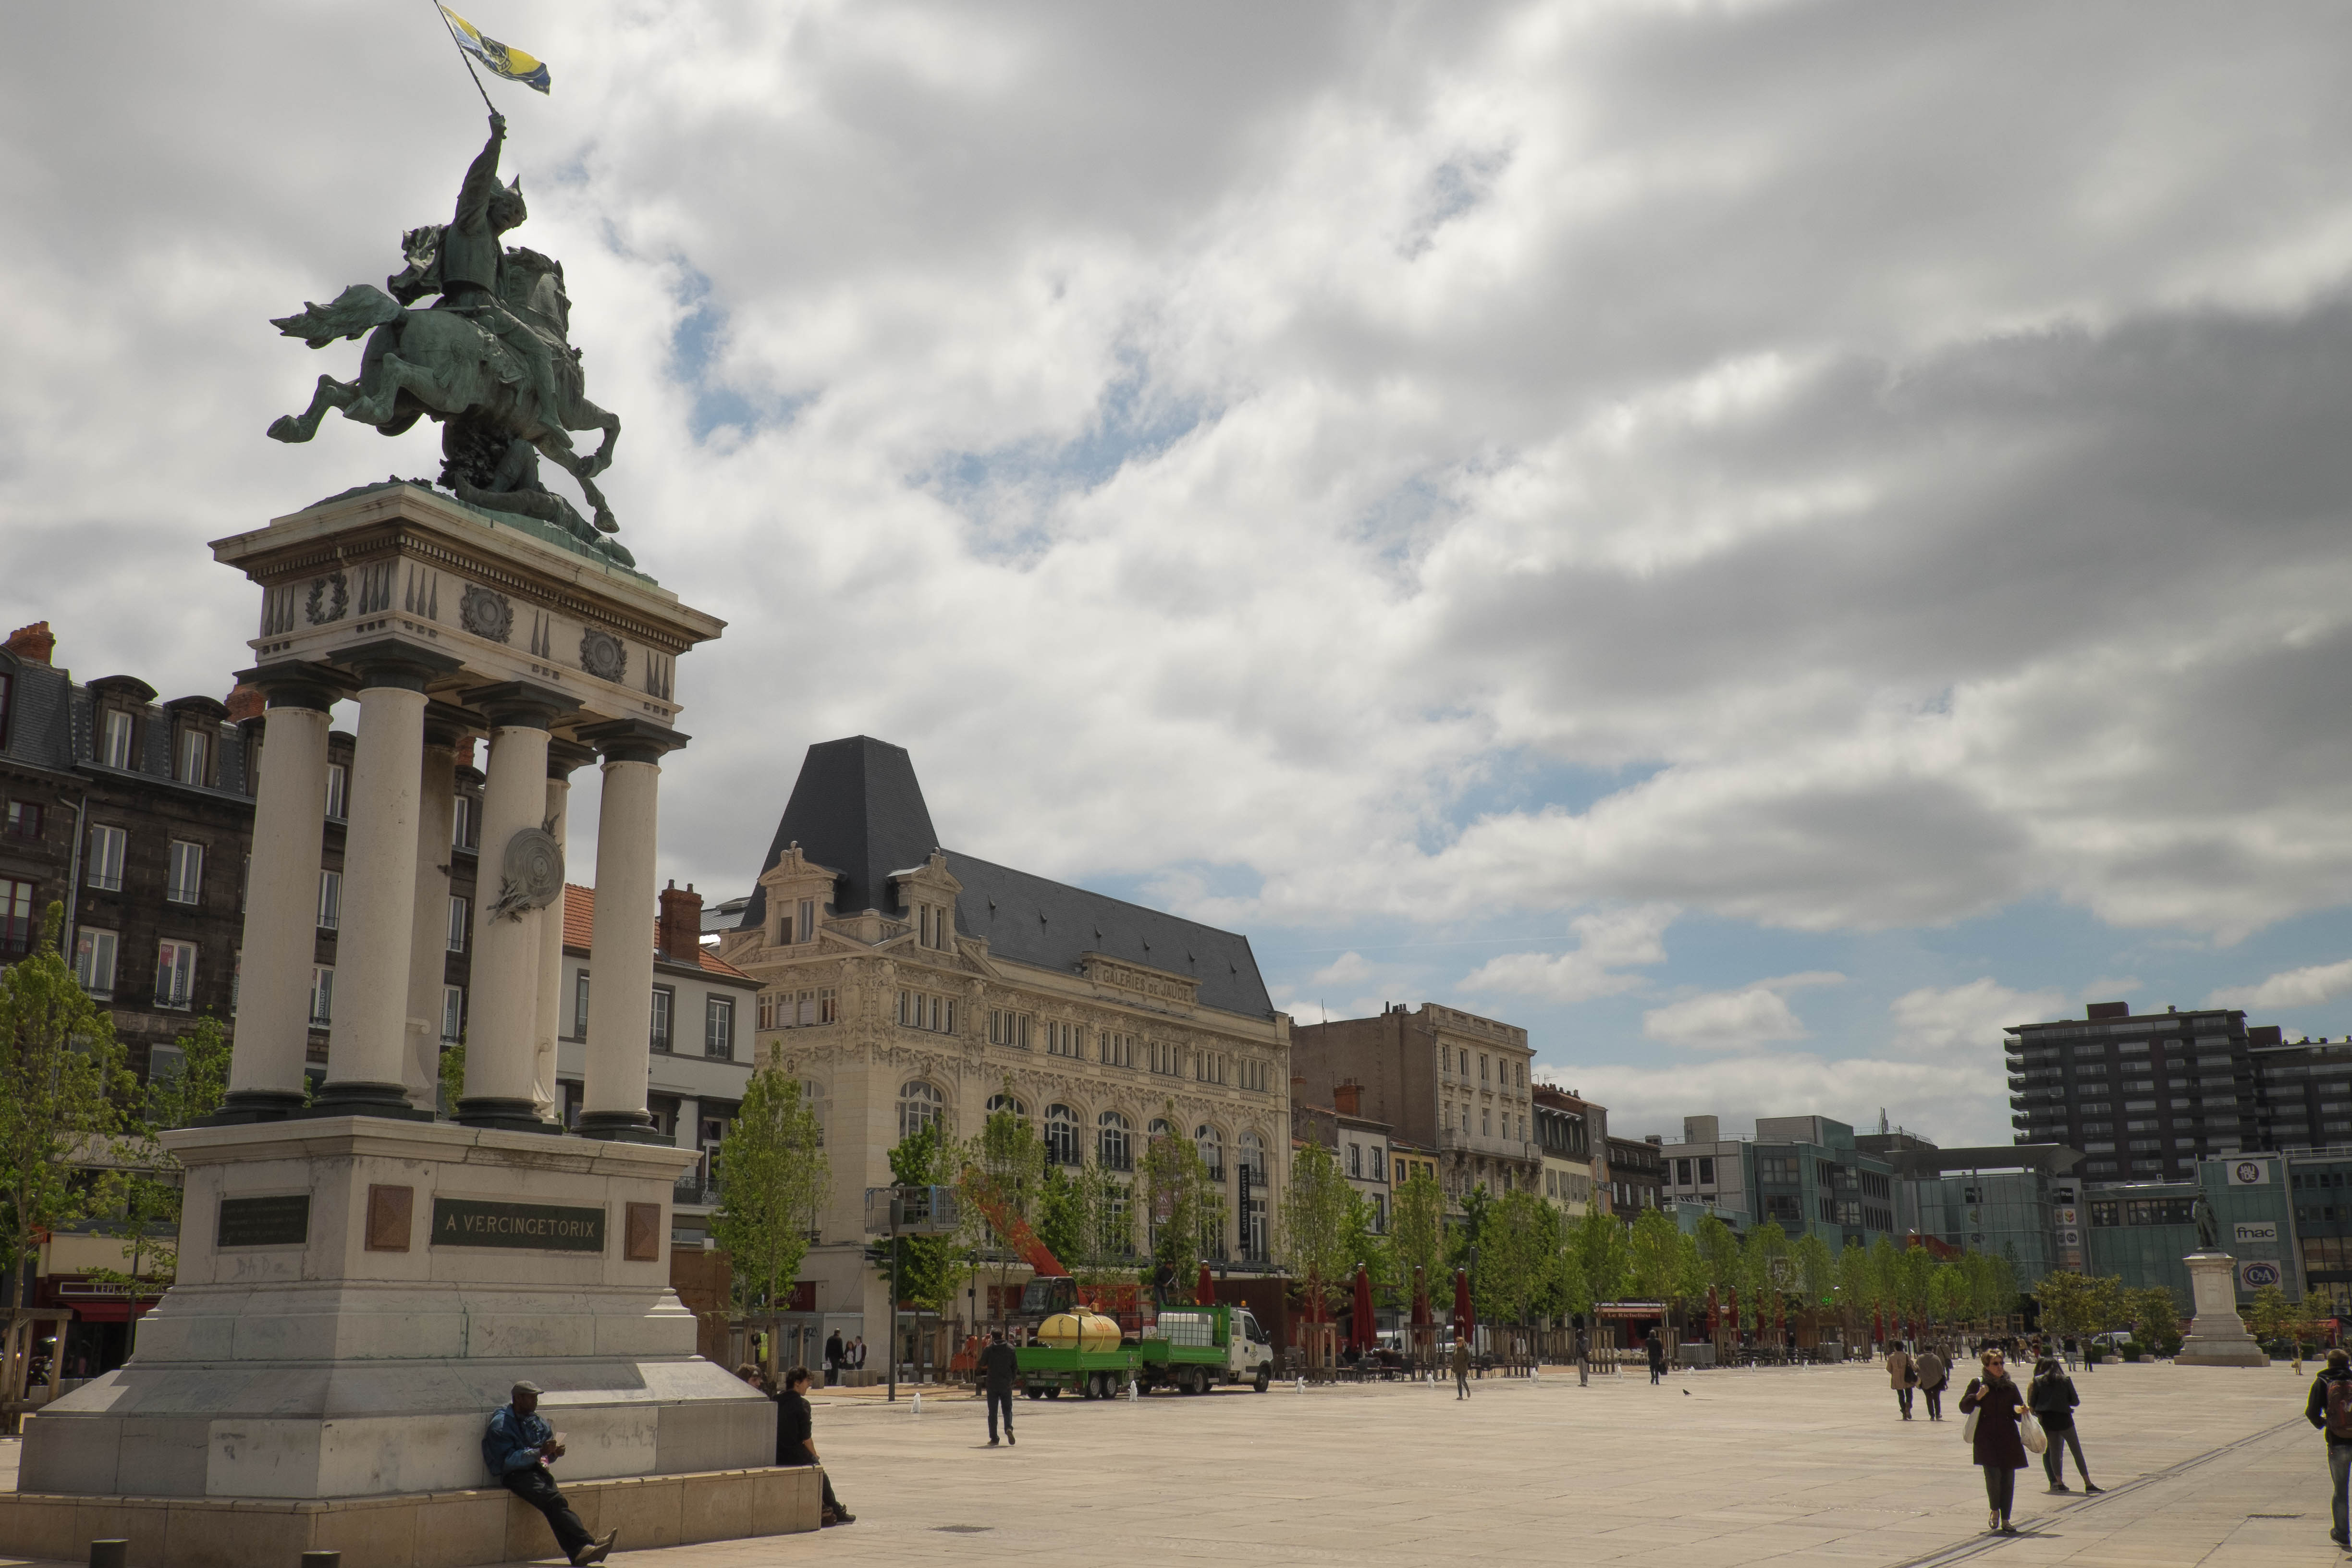 Clermont-Ferrand in Central France